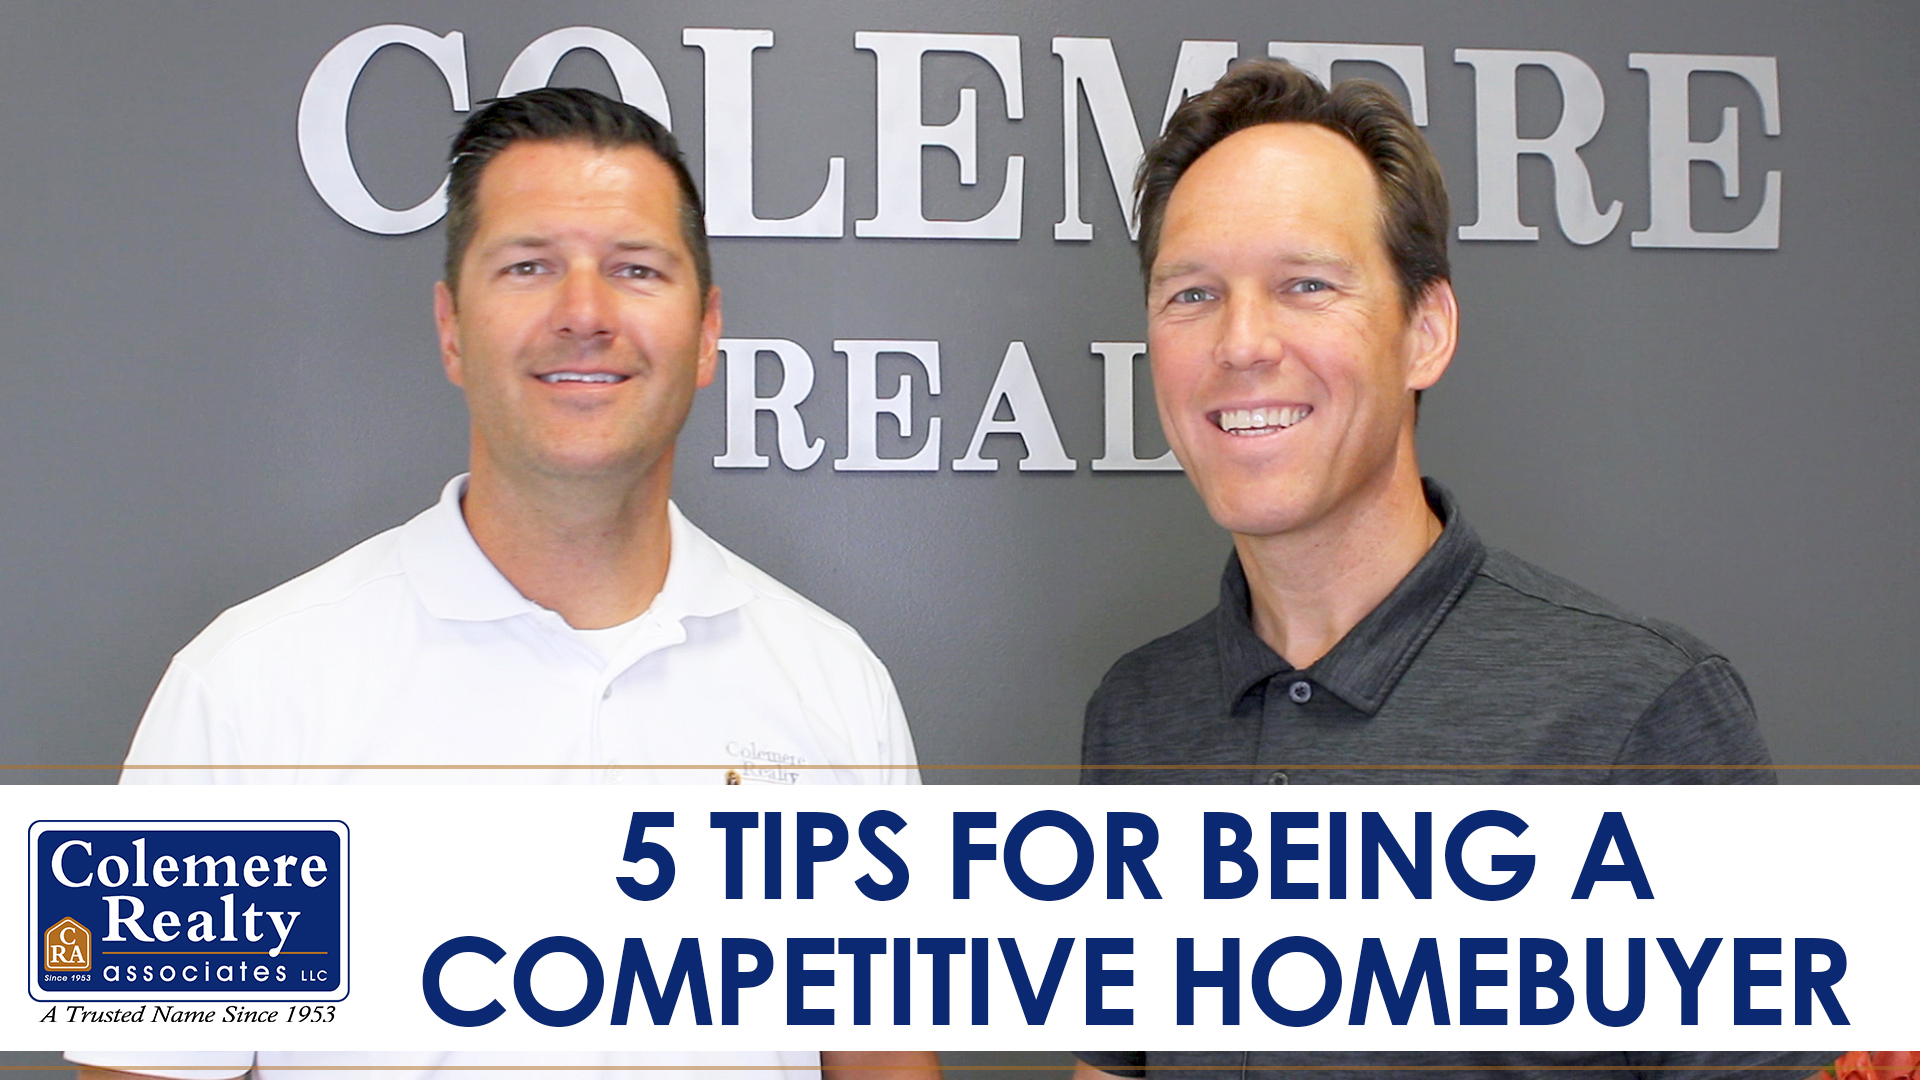 How Can Homebuyers Stay Competitive in Our Market?